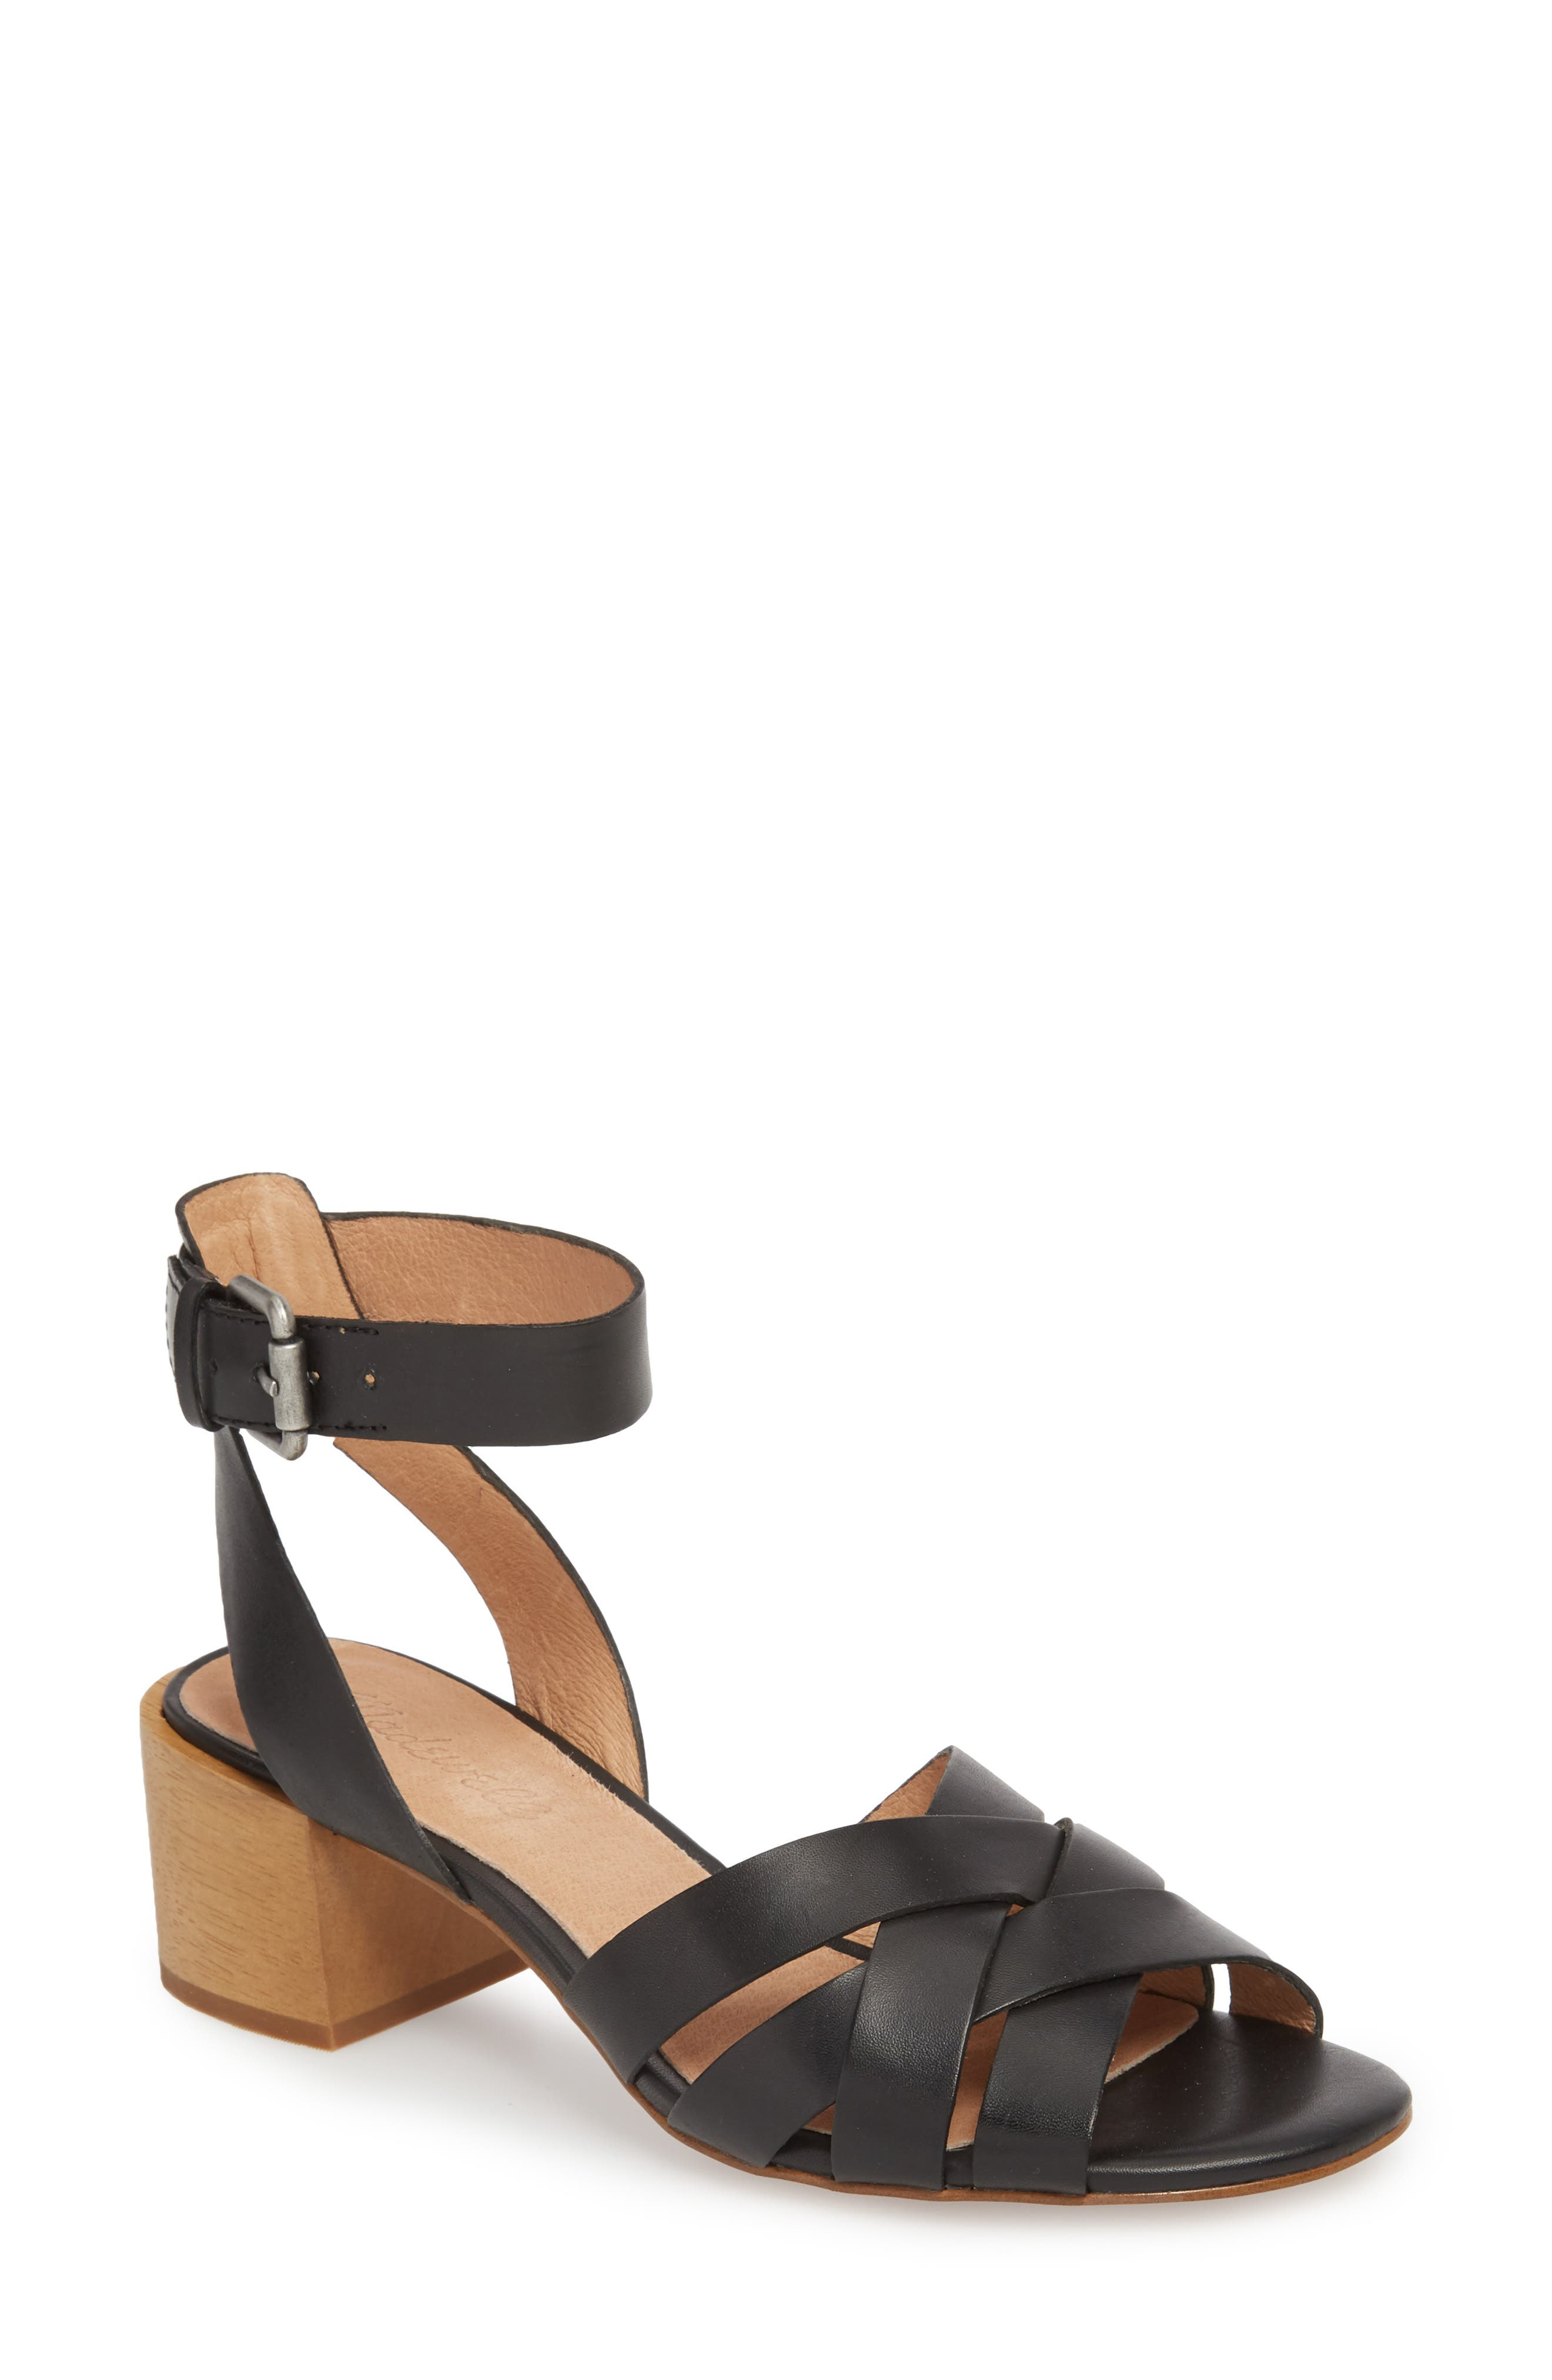 Lucy Sandal,                         Main,                         color,